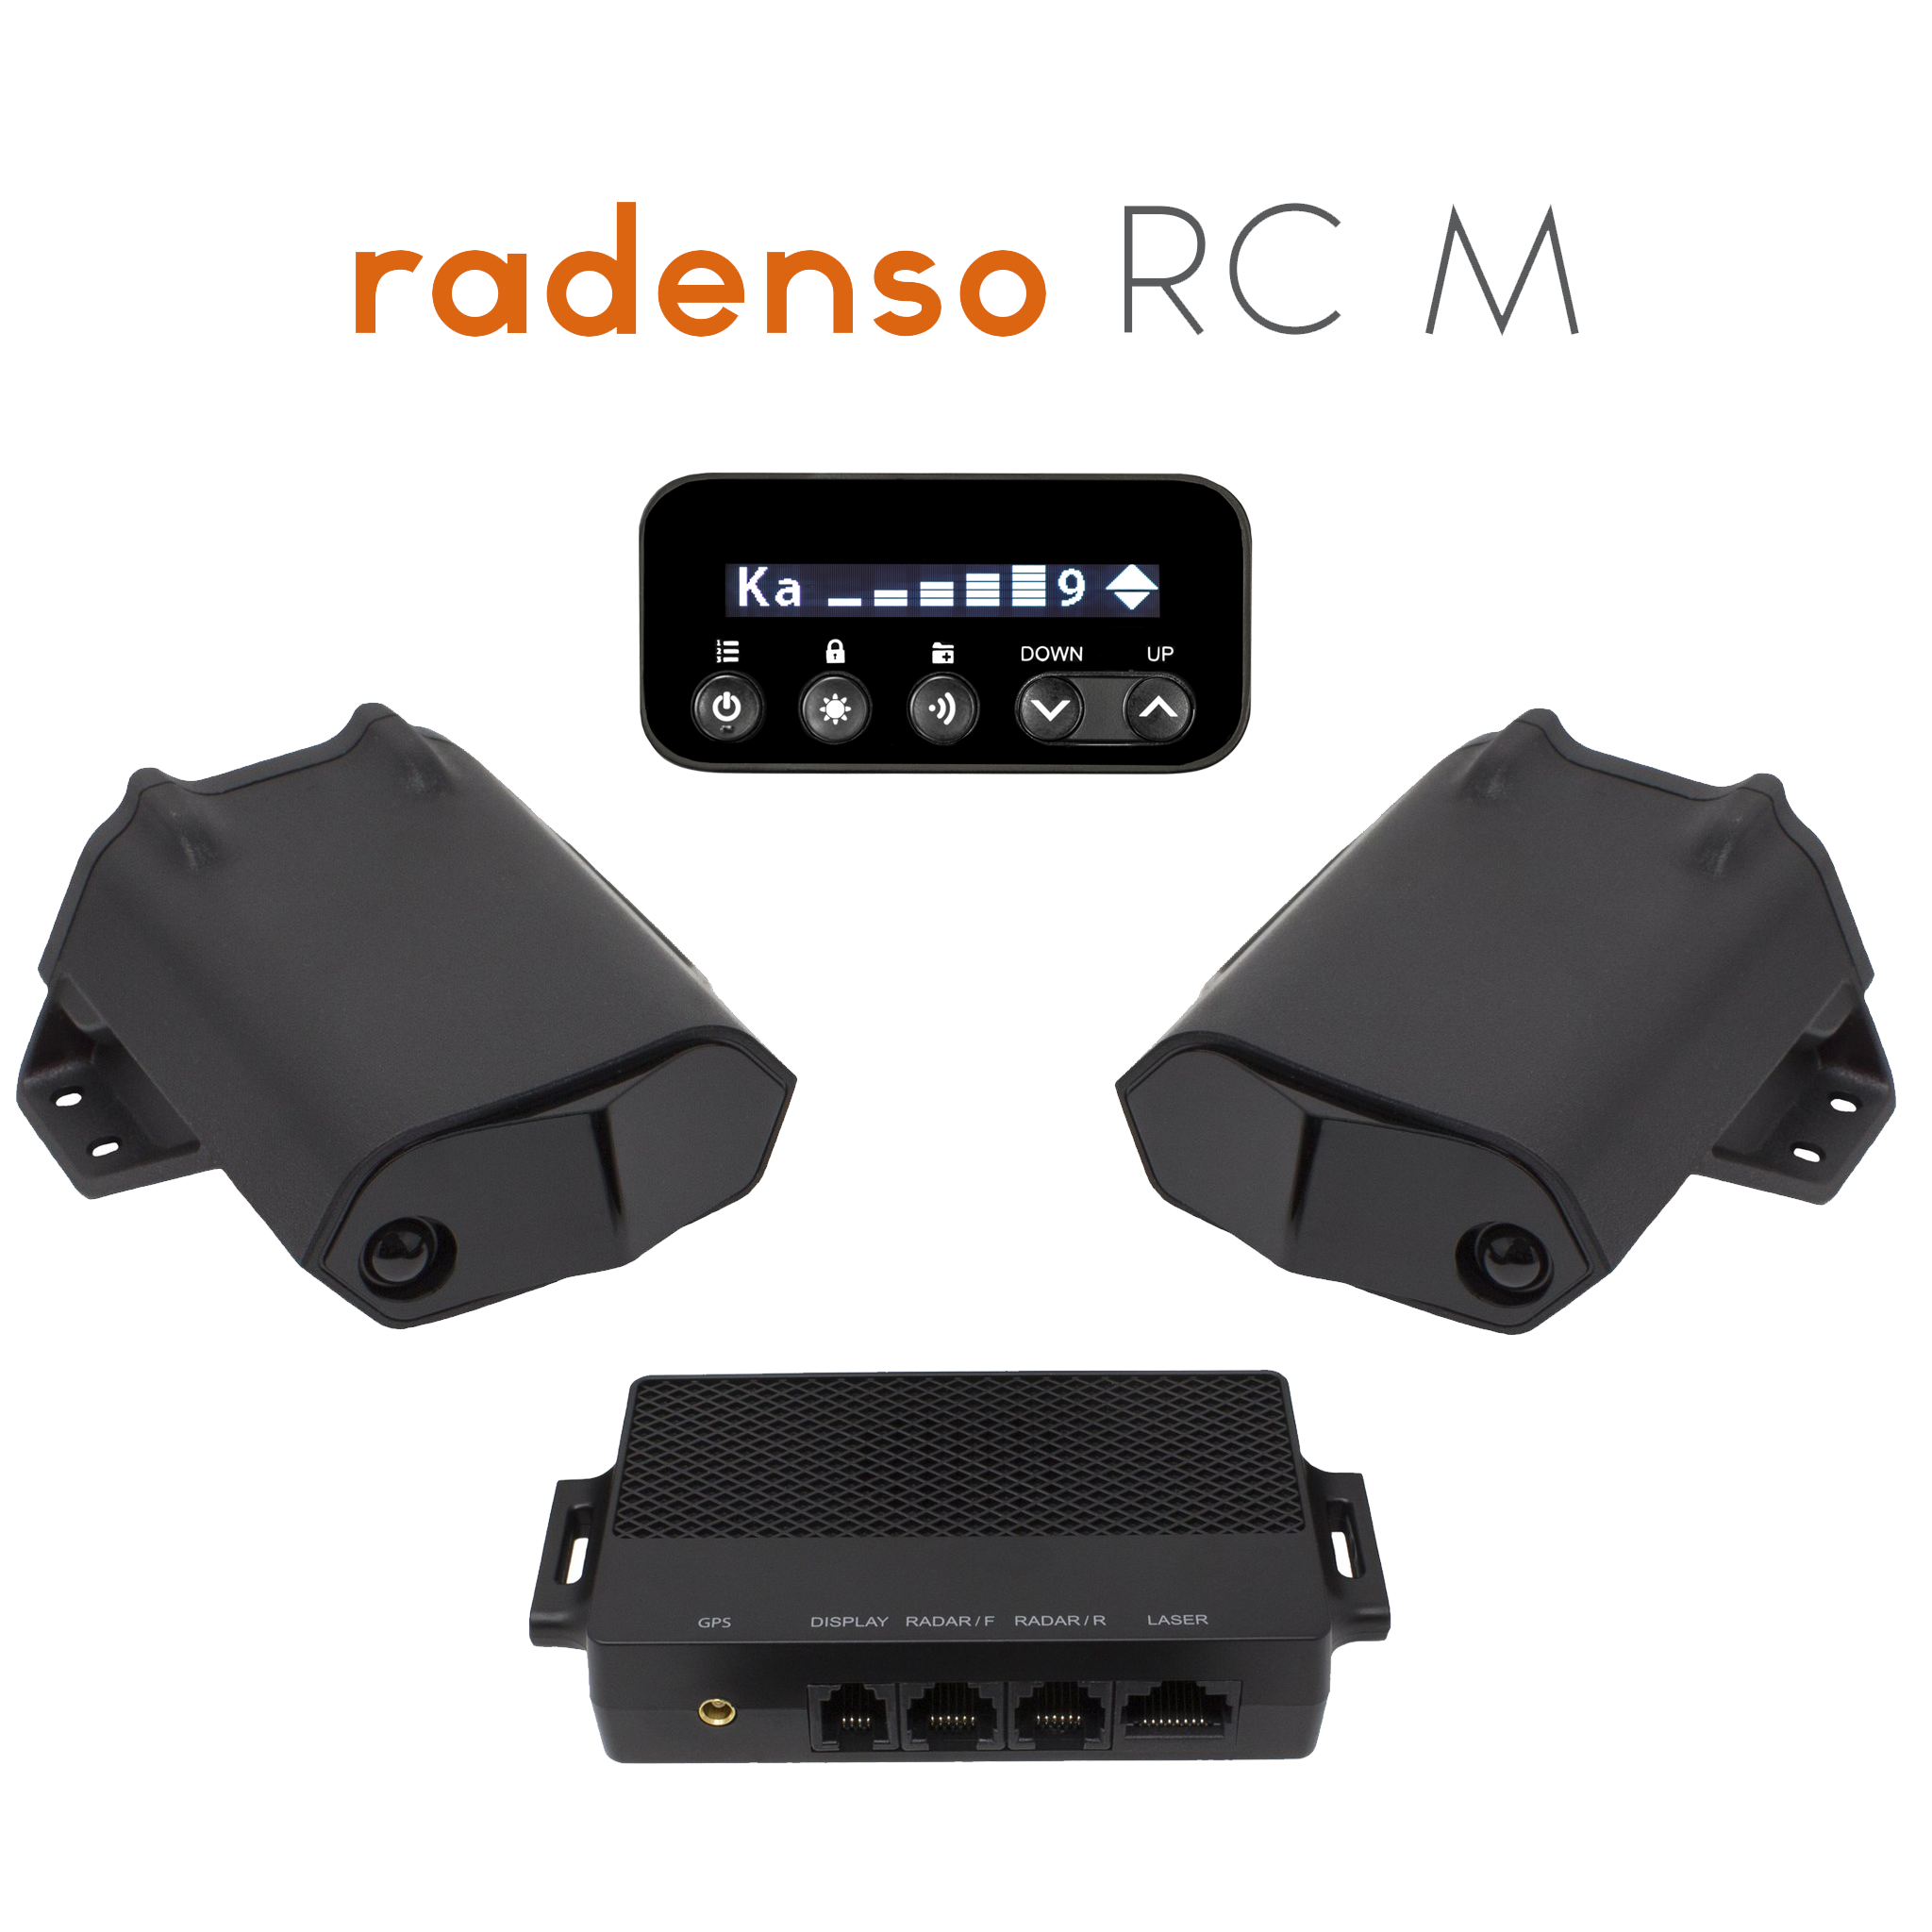 Radenso Ultimate system showing all of the equipment included